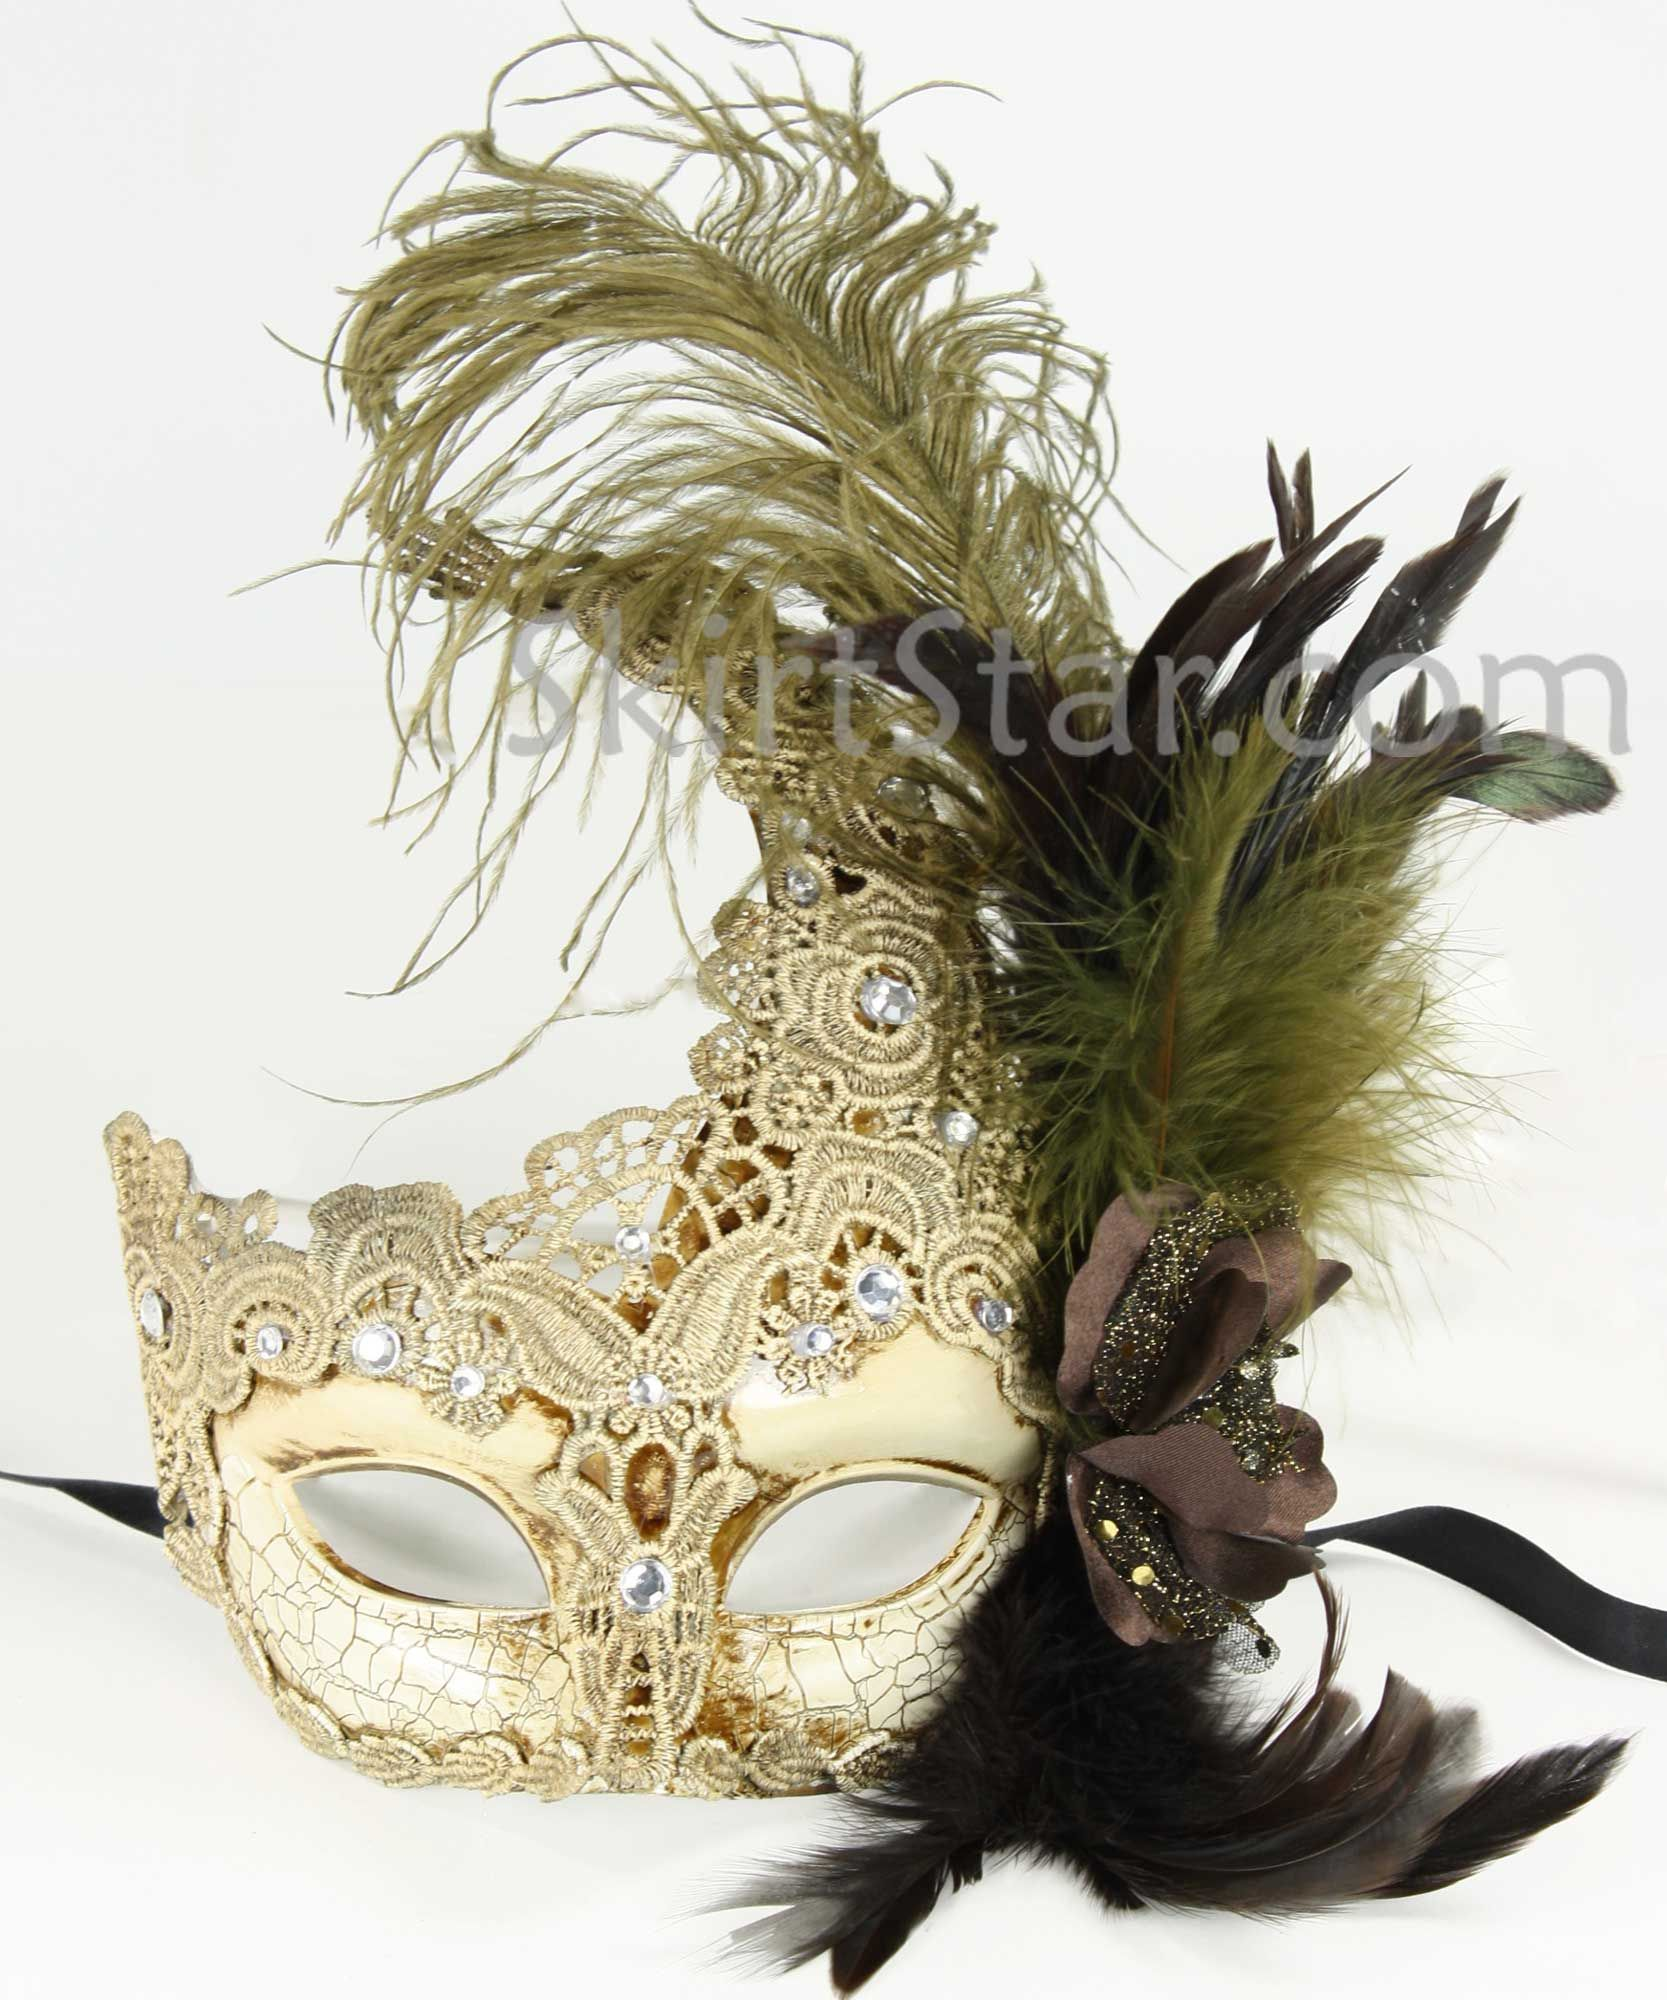 Venetian mask crystals antique white masquerade ball fancy dress